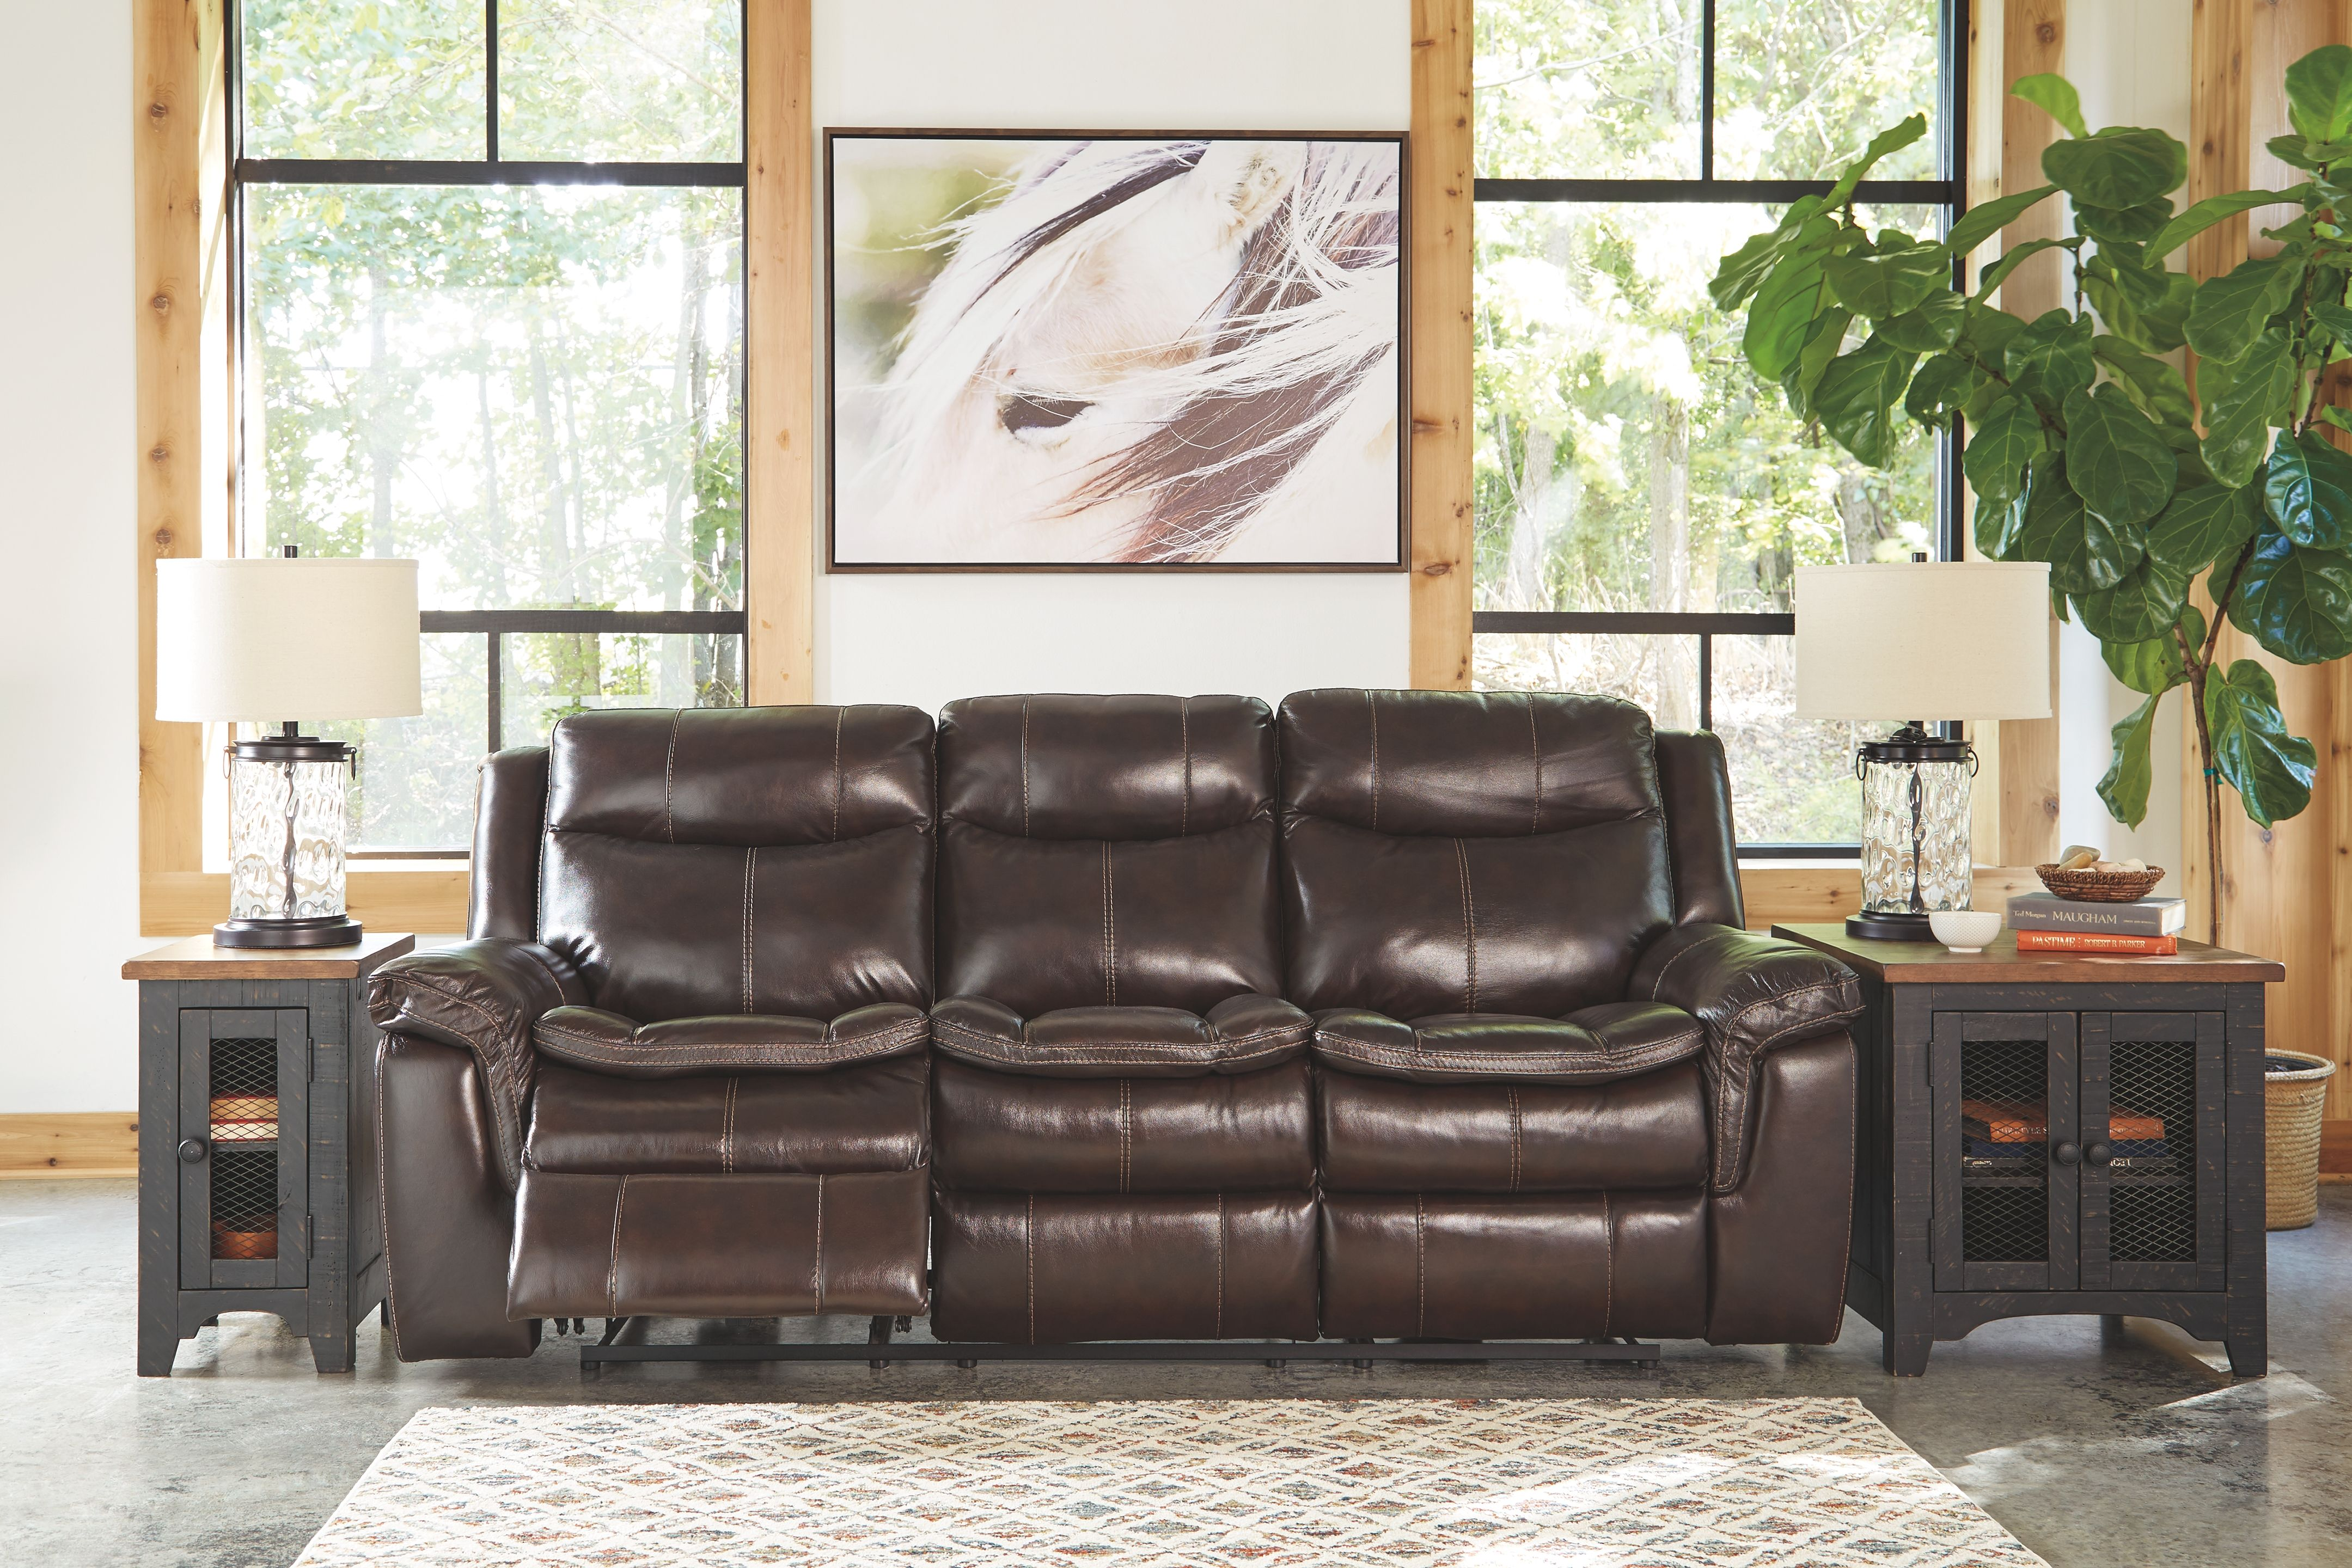 Lockesburg Power Reclining Sofa Canyon Leather In 2020 Recliner